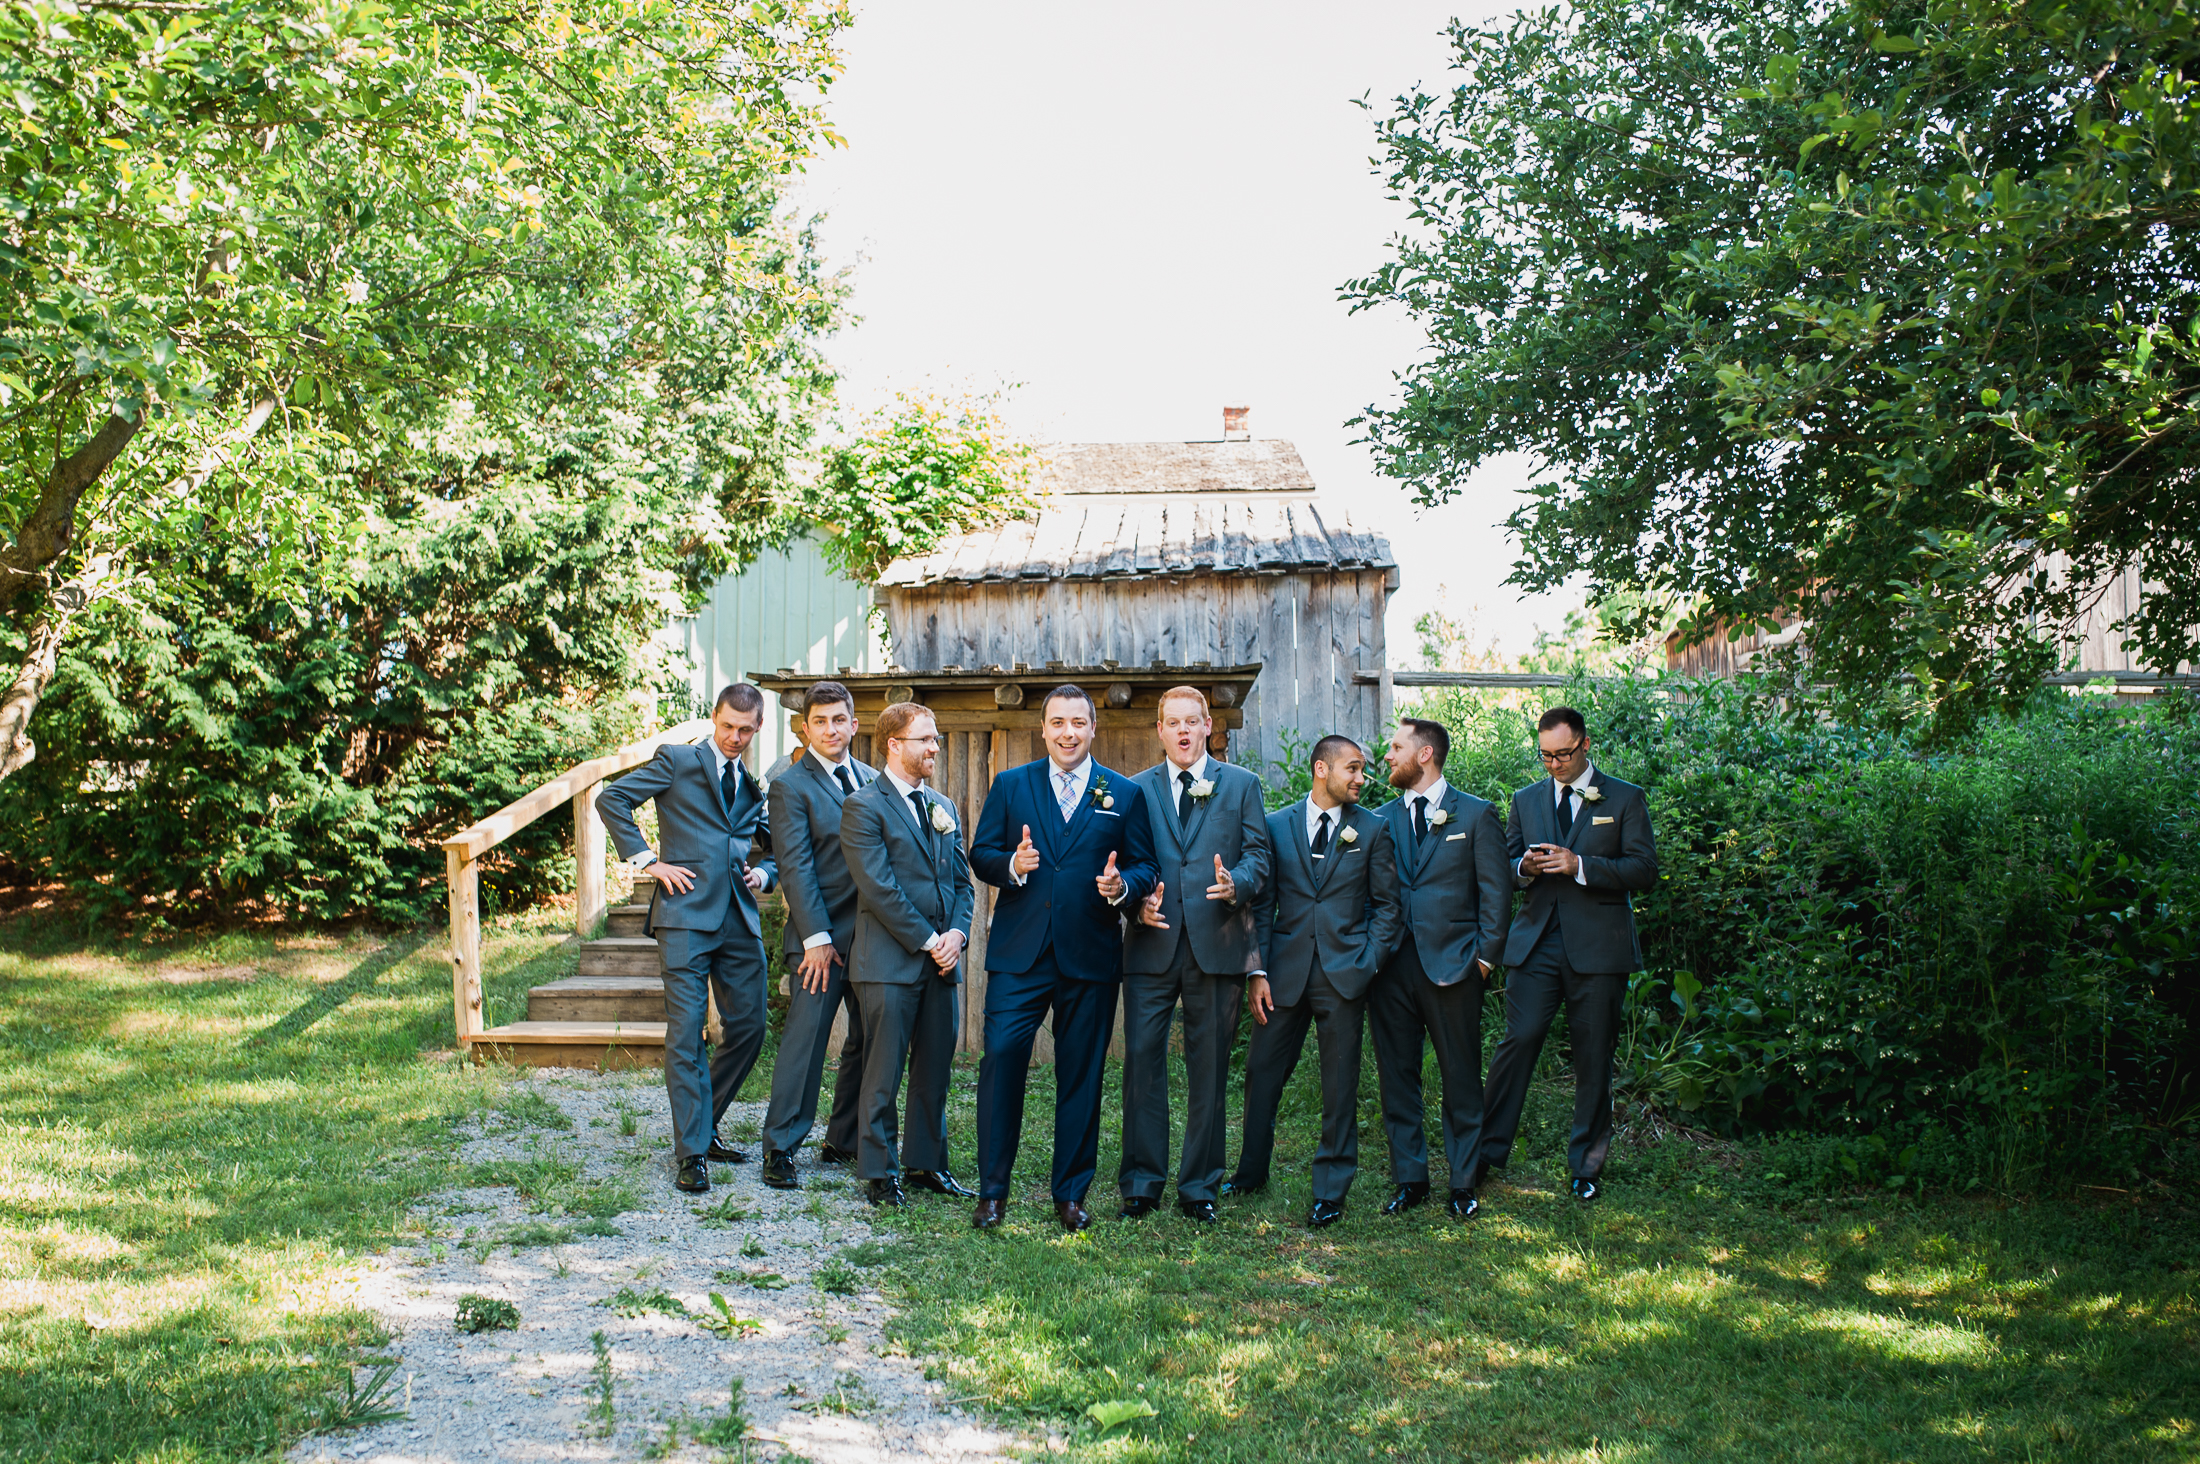 pickering_lakehouse_wedding_durham_region133